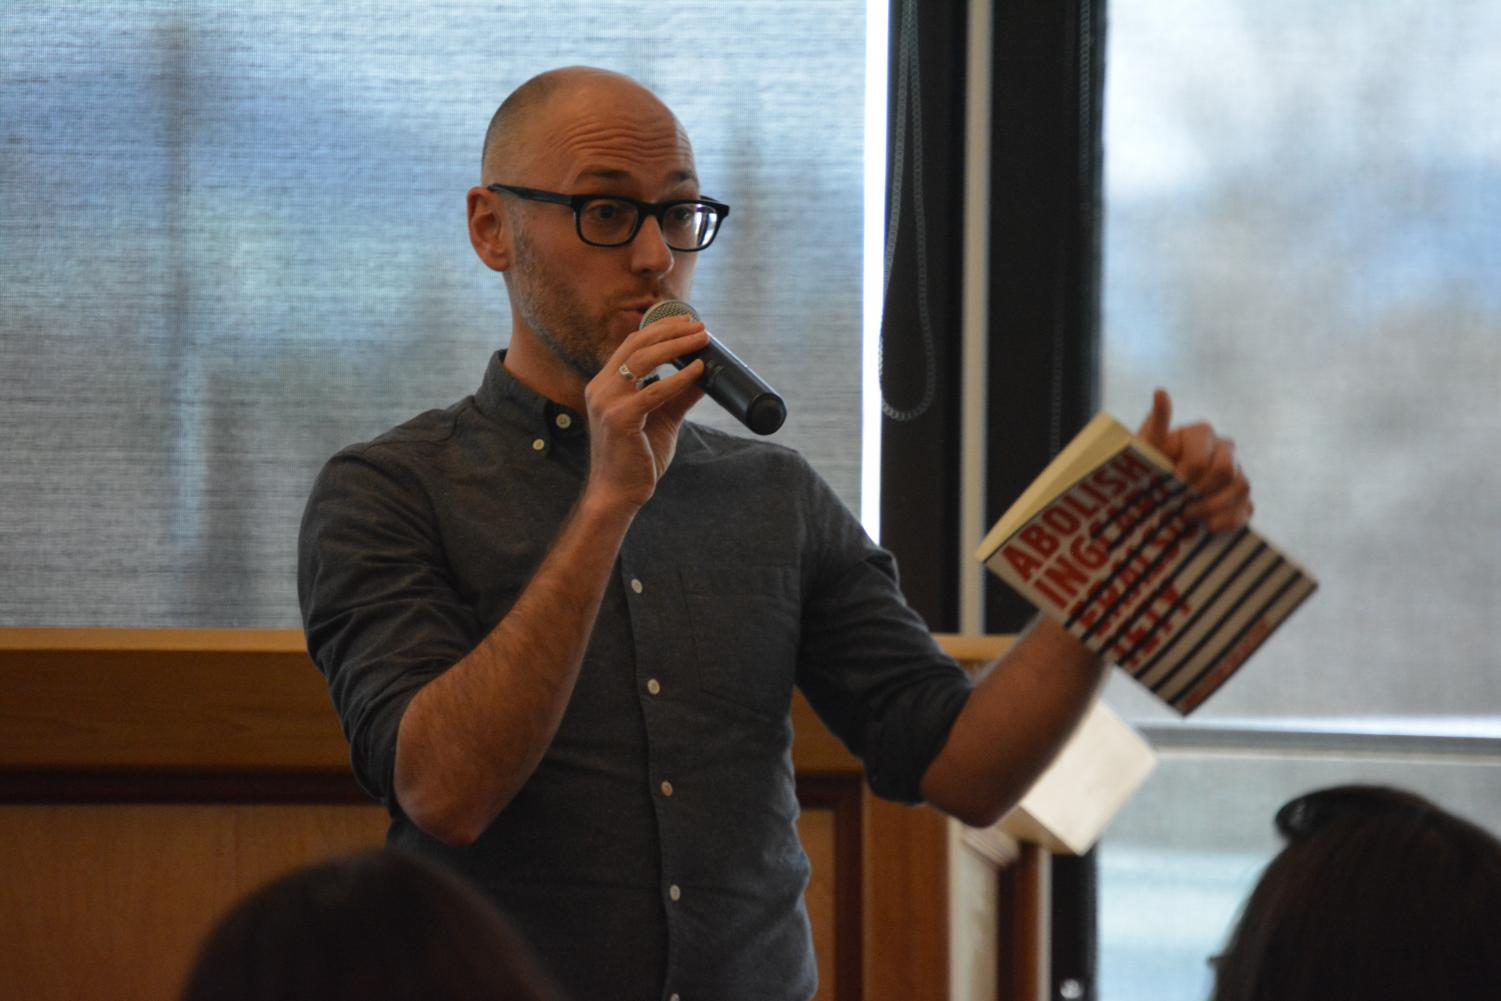 Dr. Andrew Dilts discusses how abolition plays into the fight against incarceration on Feb.28 in the Diablo Room. (Samantha Laurey/The Inquirer).